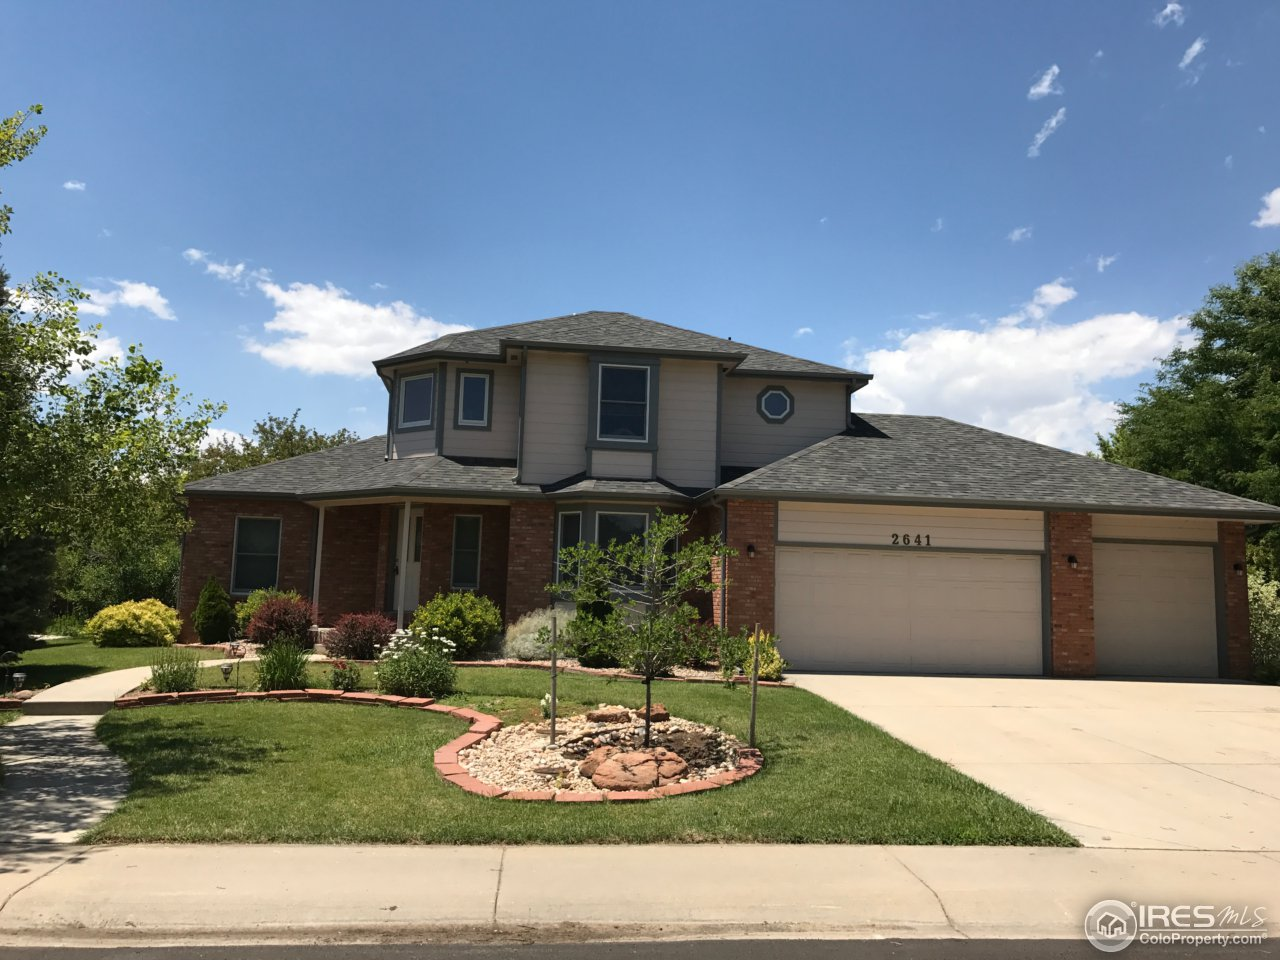 2641 54TH AVE, GREELEY, CO 80634